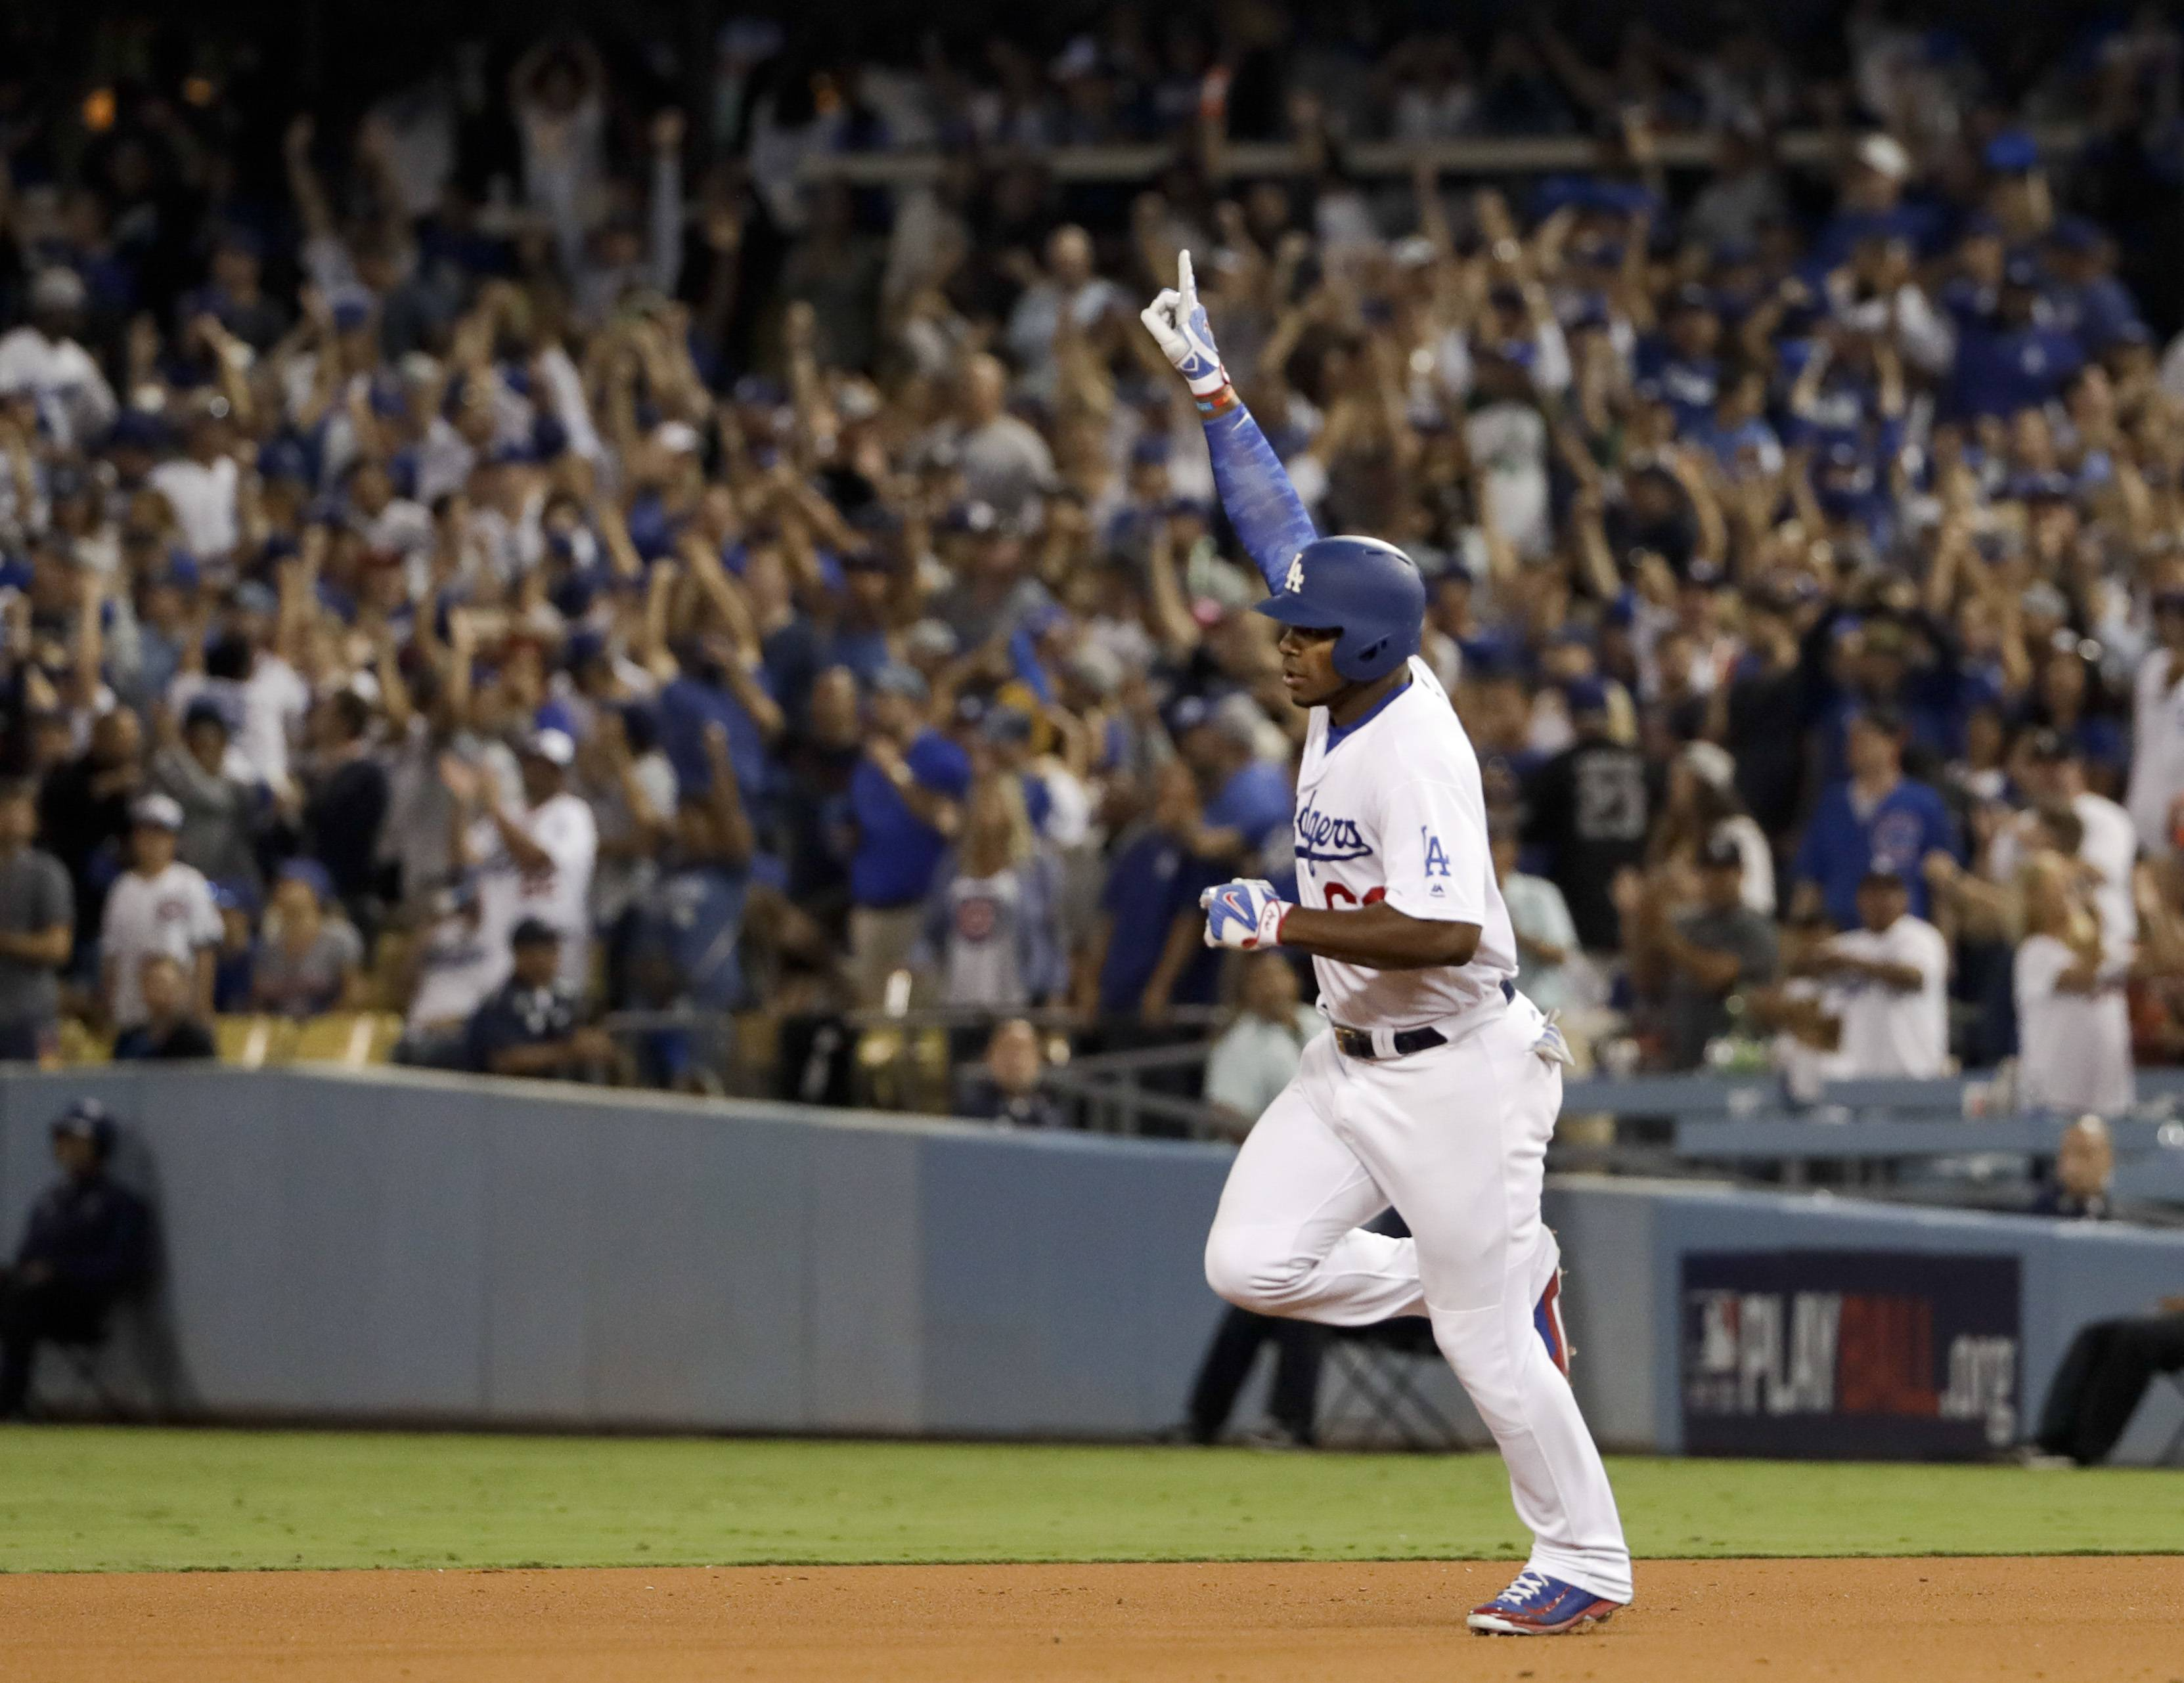 Los Angeles Dodgers' Yasiel Puig celebrates his home run against the Chicago Cubs during the seventh inning of Game 1 of baseball's National League Championship Series in Los Angeles, Saturday, Oct. 14, 2017.